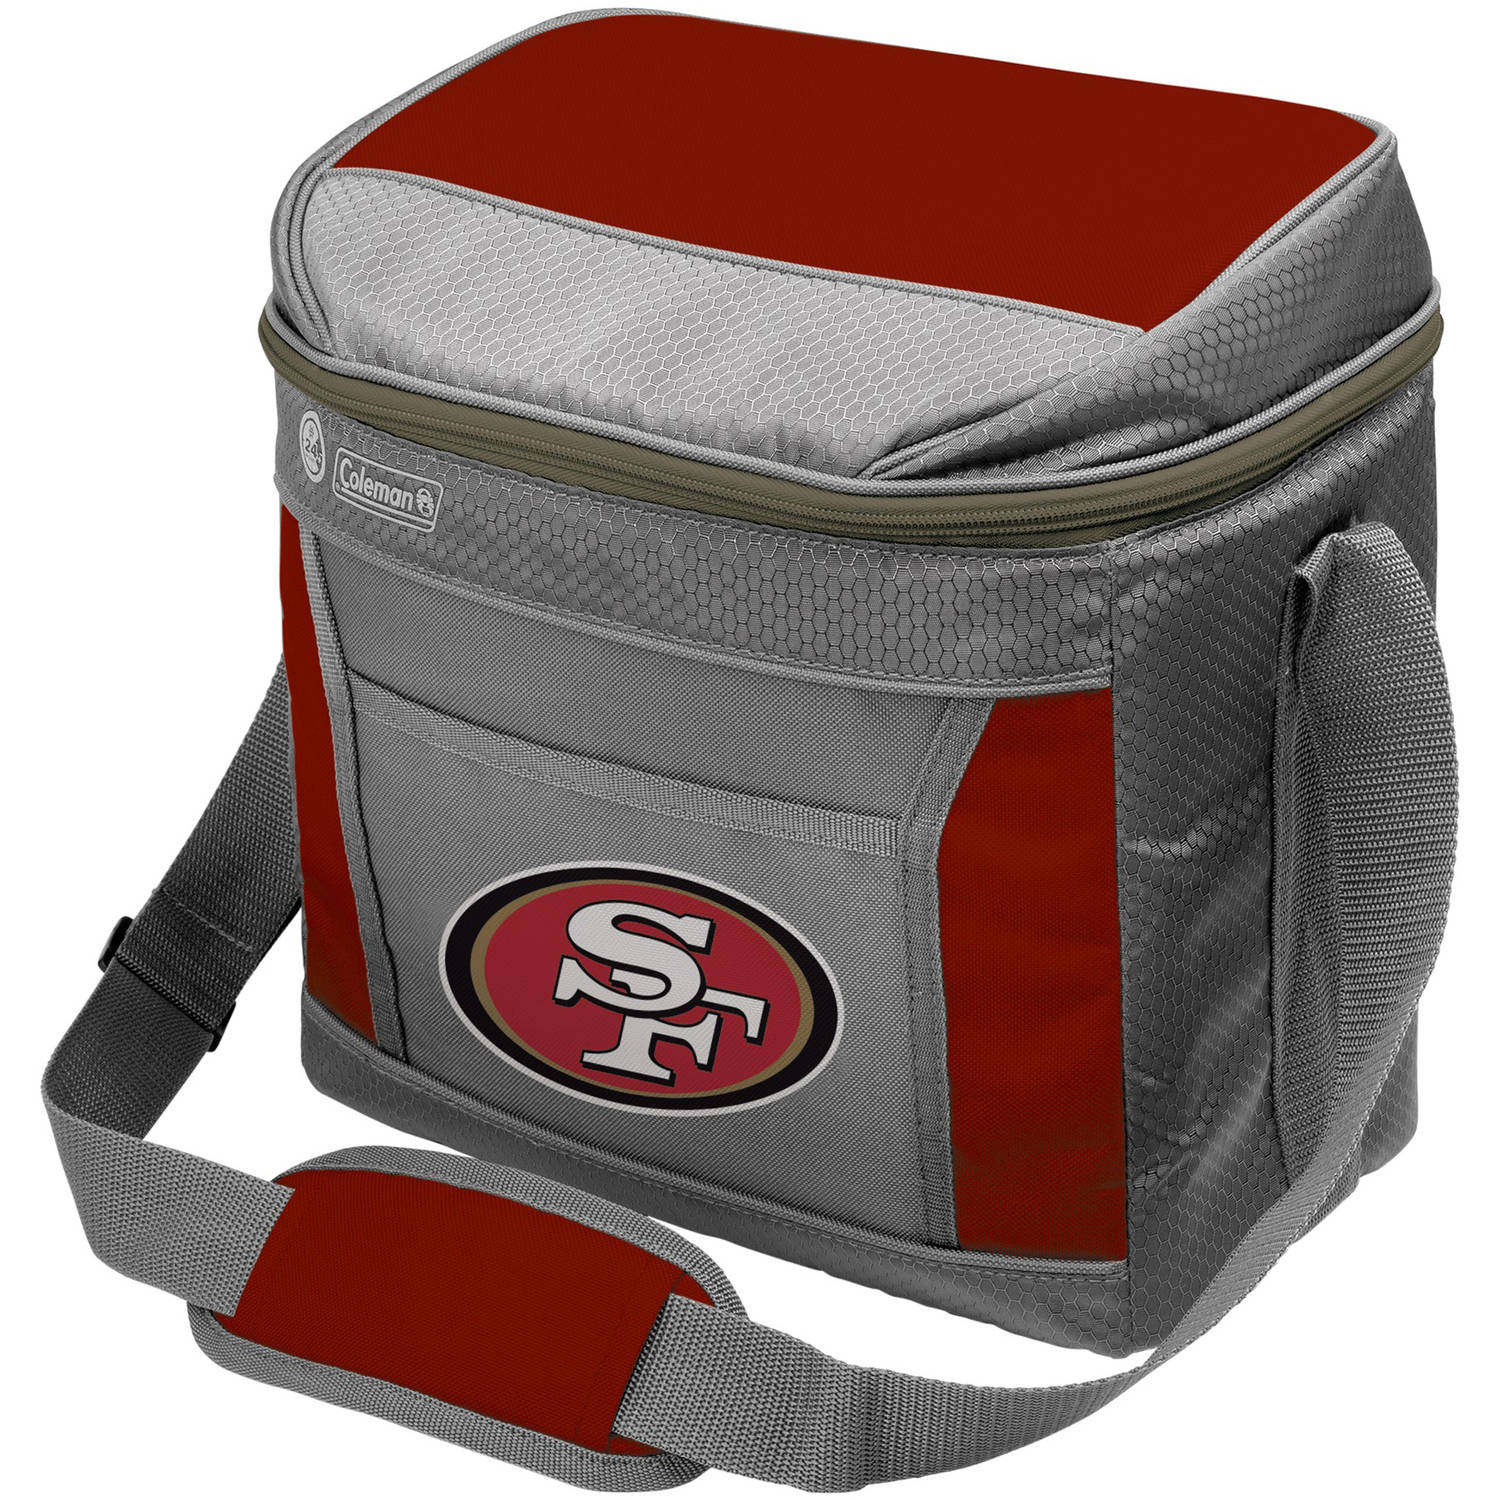 NFL 16-Can Soft-Sided Cooler, San Francisco